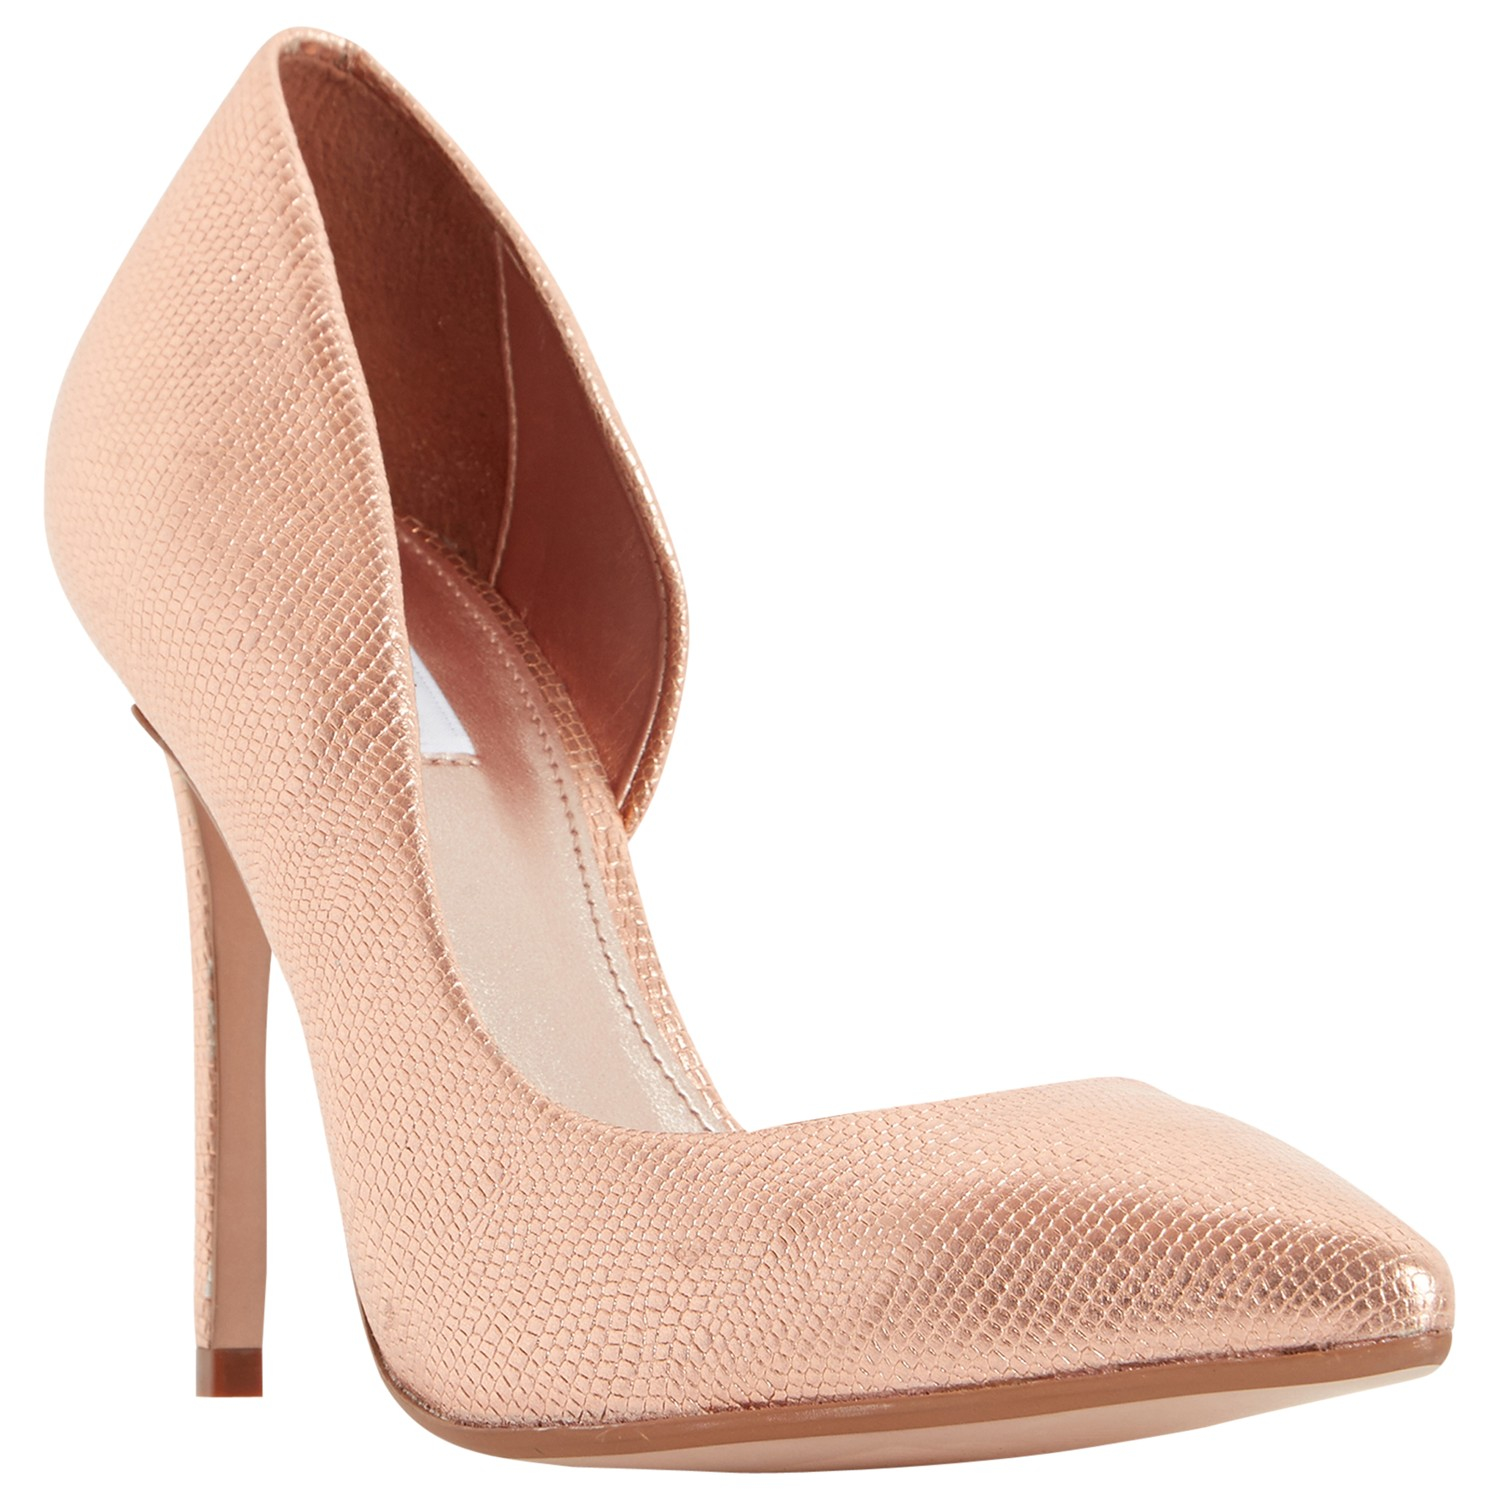 9e35585b235a Dune Clarah Asymmetric Stiletto Heeled Court Shoes in Pink - Lyst